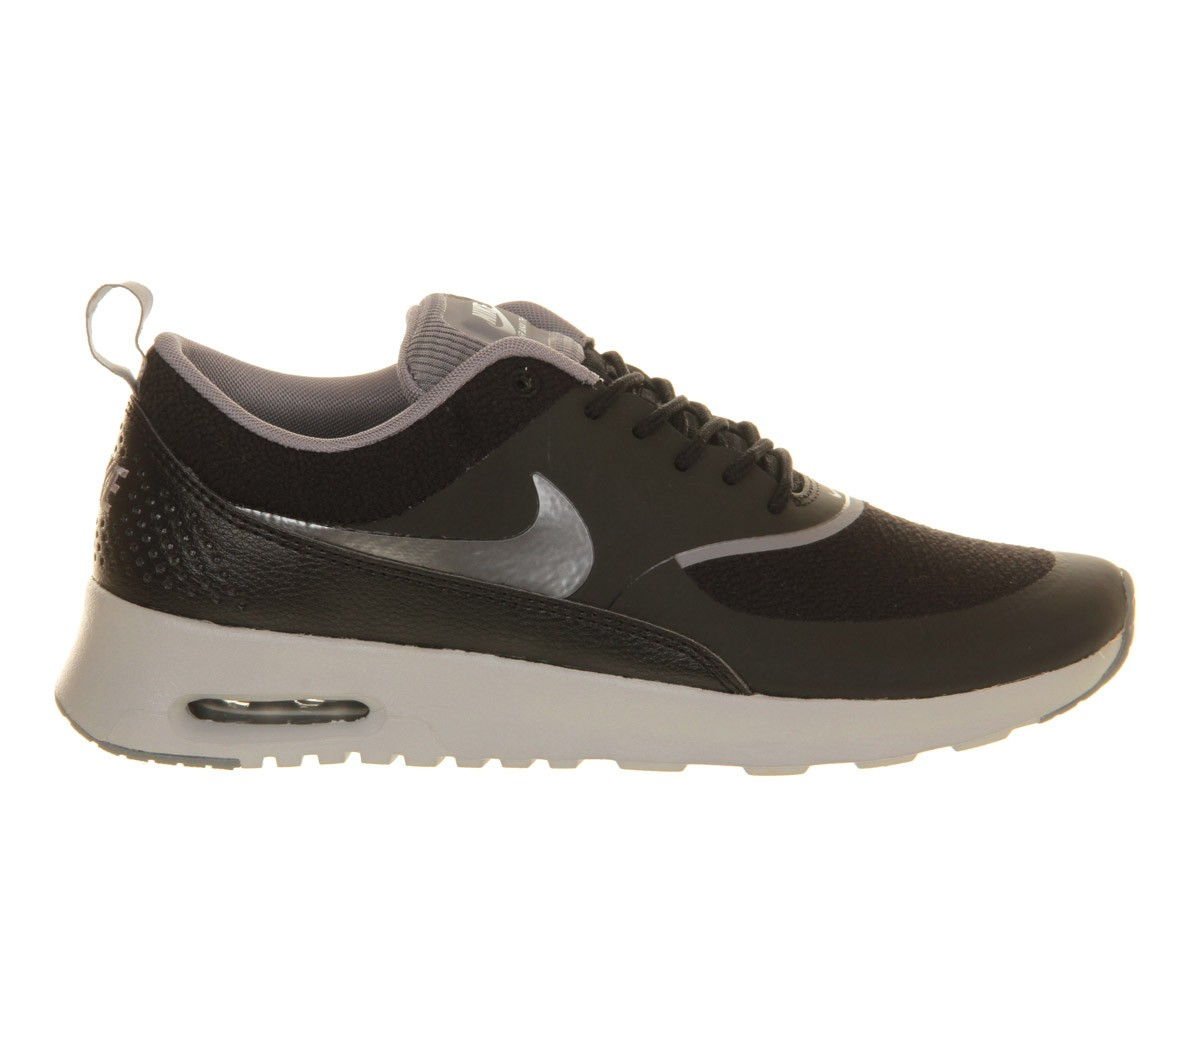 Womens Nike Air Max Thea Running Shoes Black/Grey/Metallic Silver - Style 599409 015